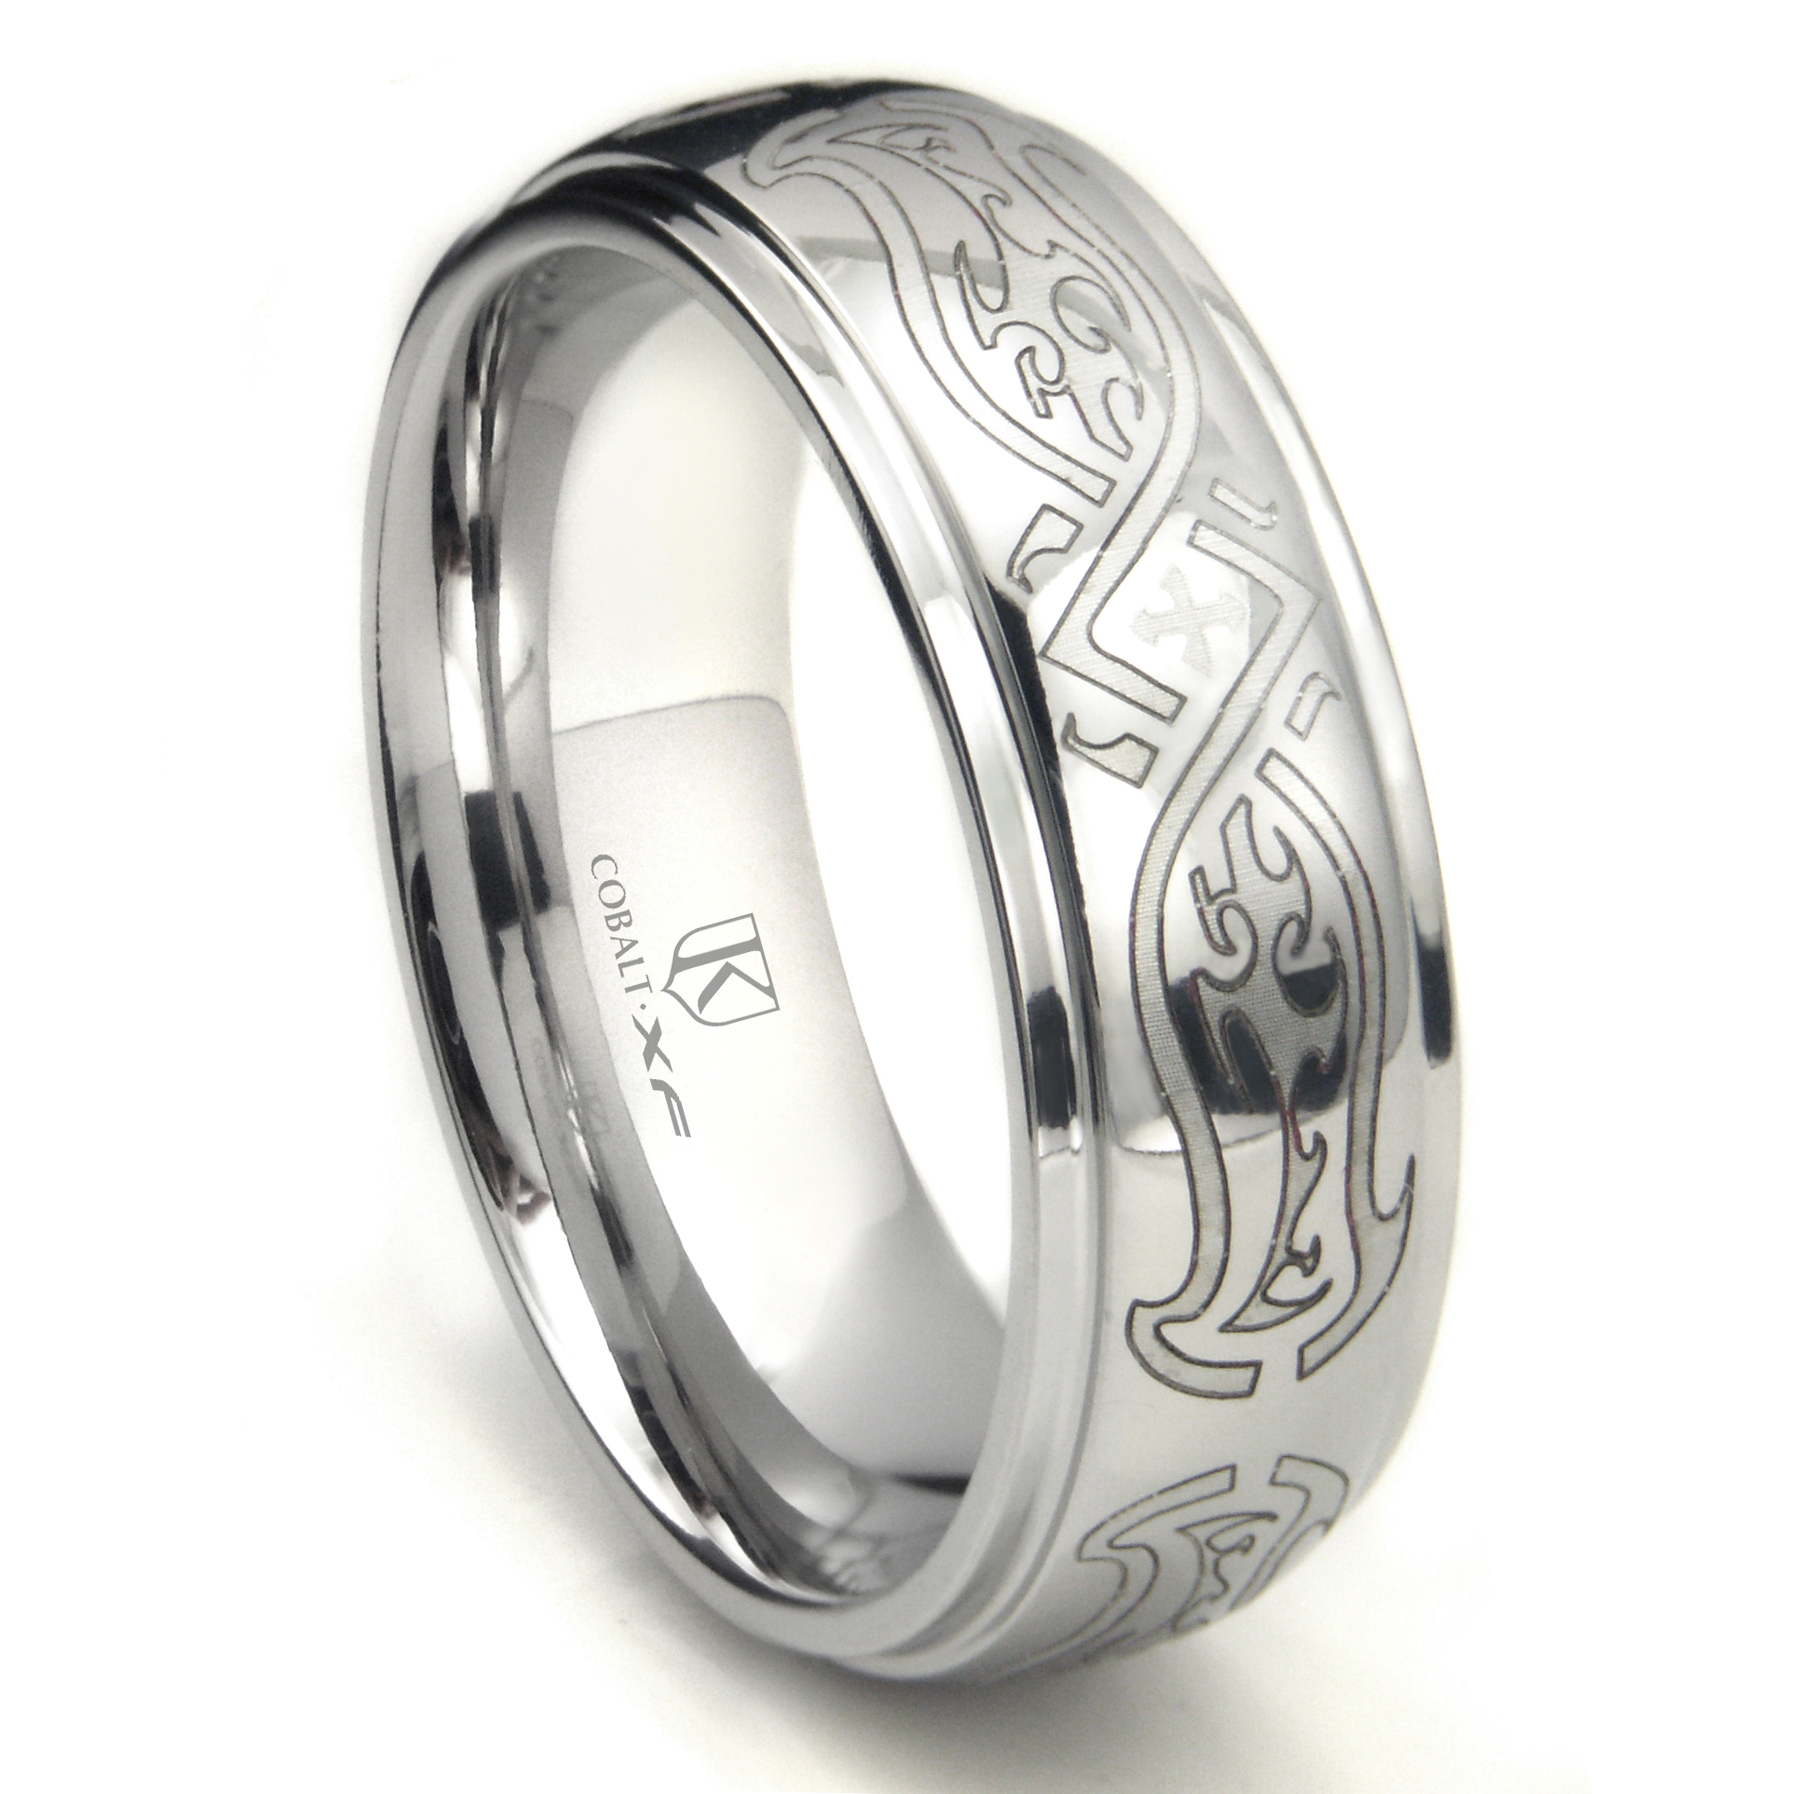 inside of streeter jewellery angels and gaelic rings pagans alex popular view pagan engagement